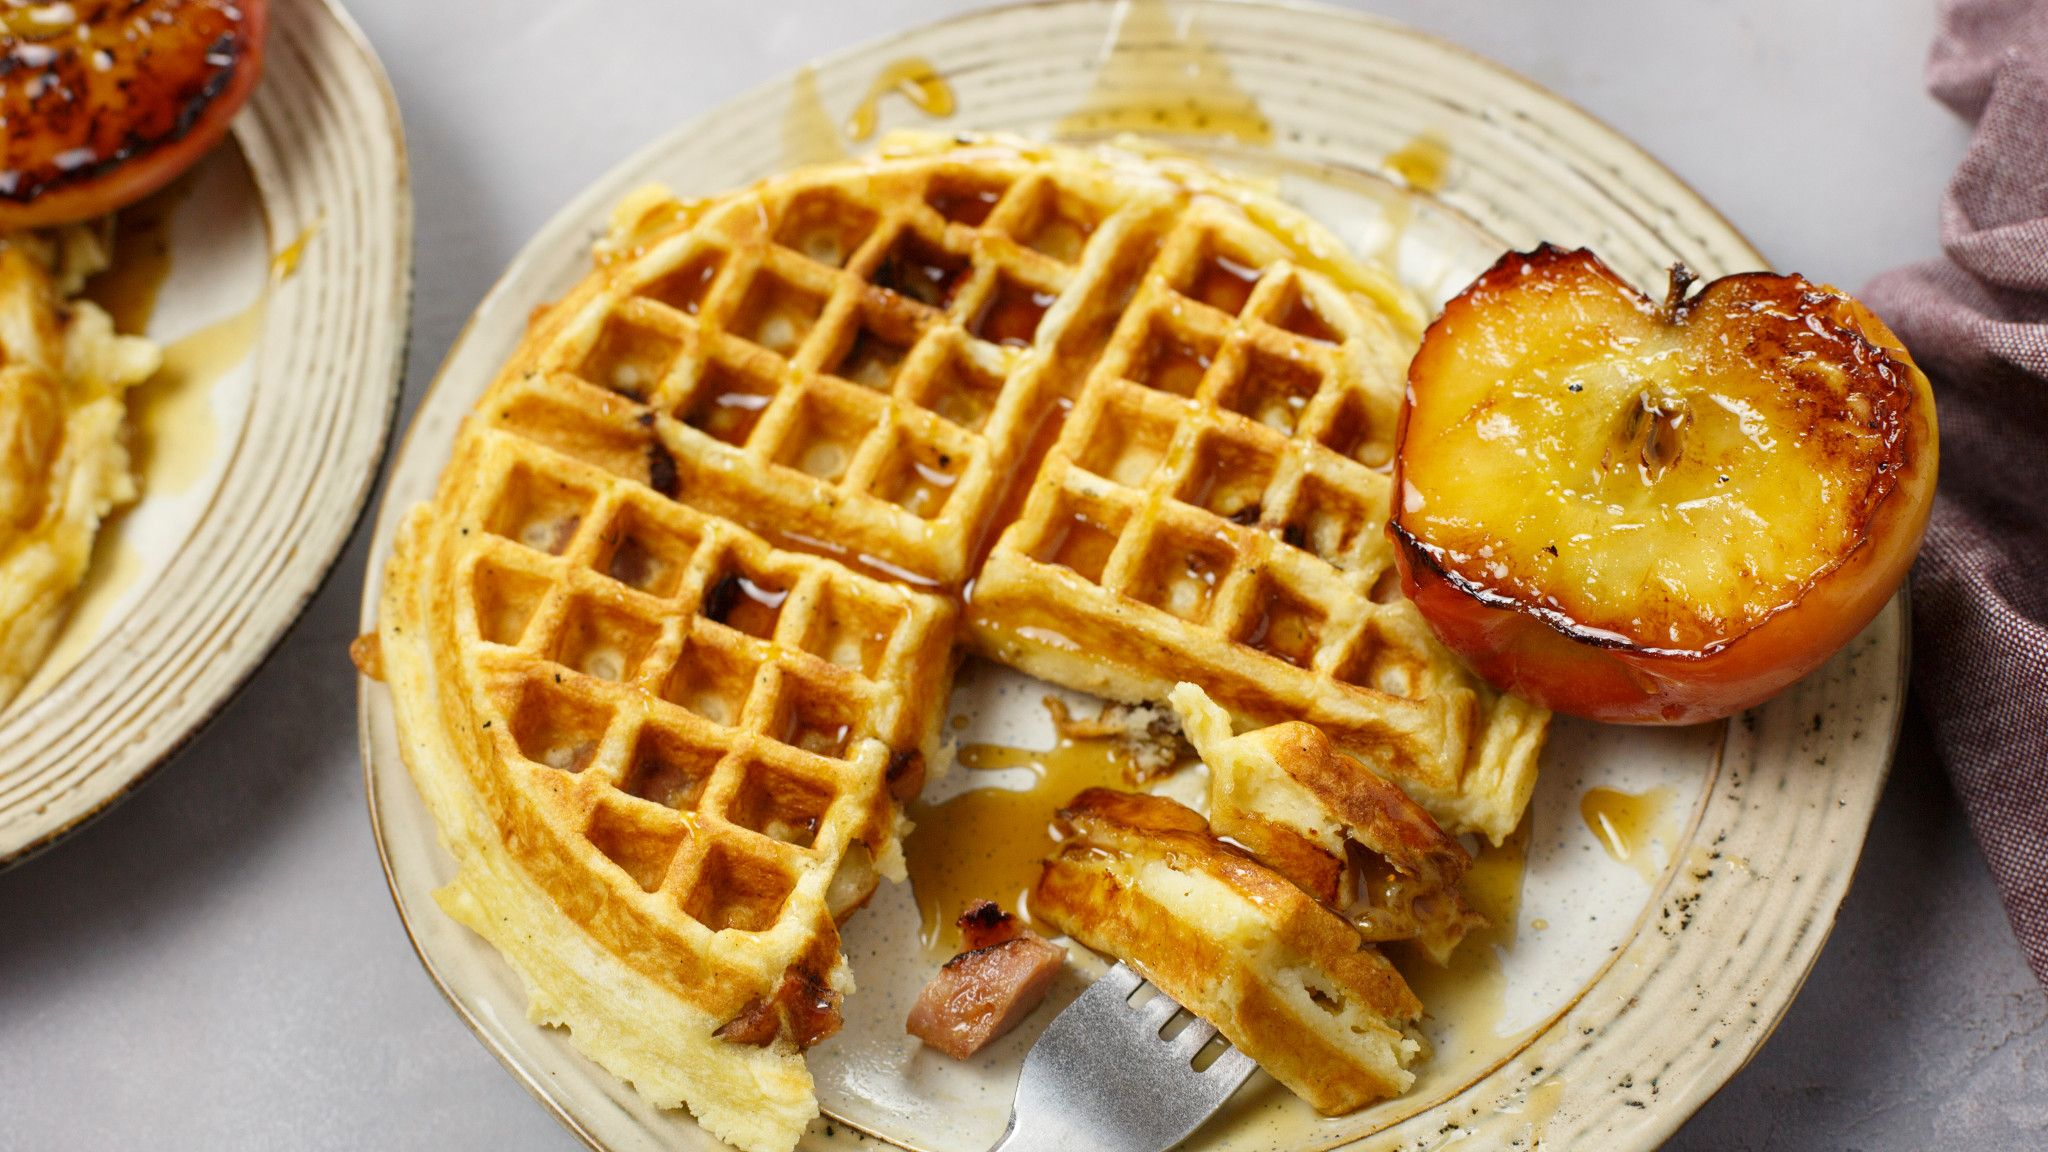 ginger_waffle_with_apple_chicken_sausage_6.jpg